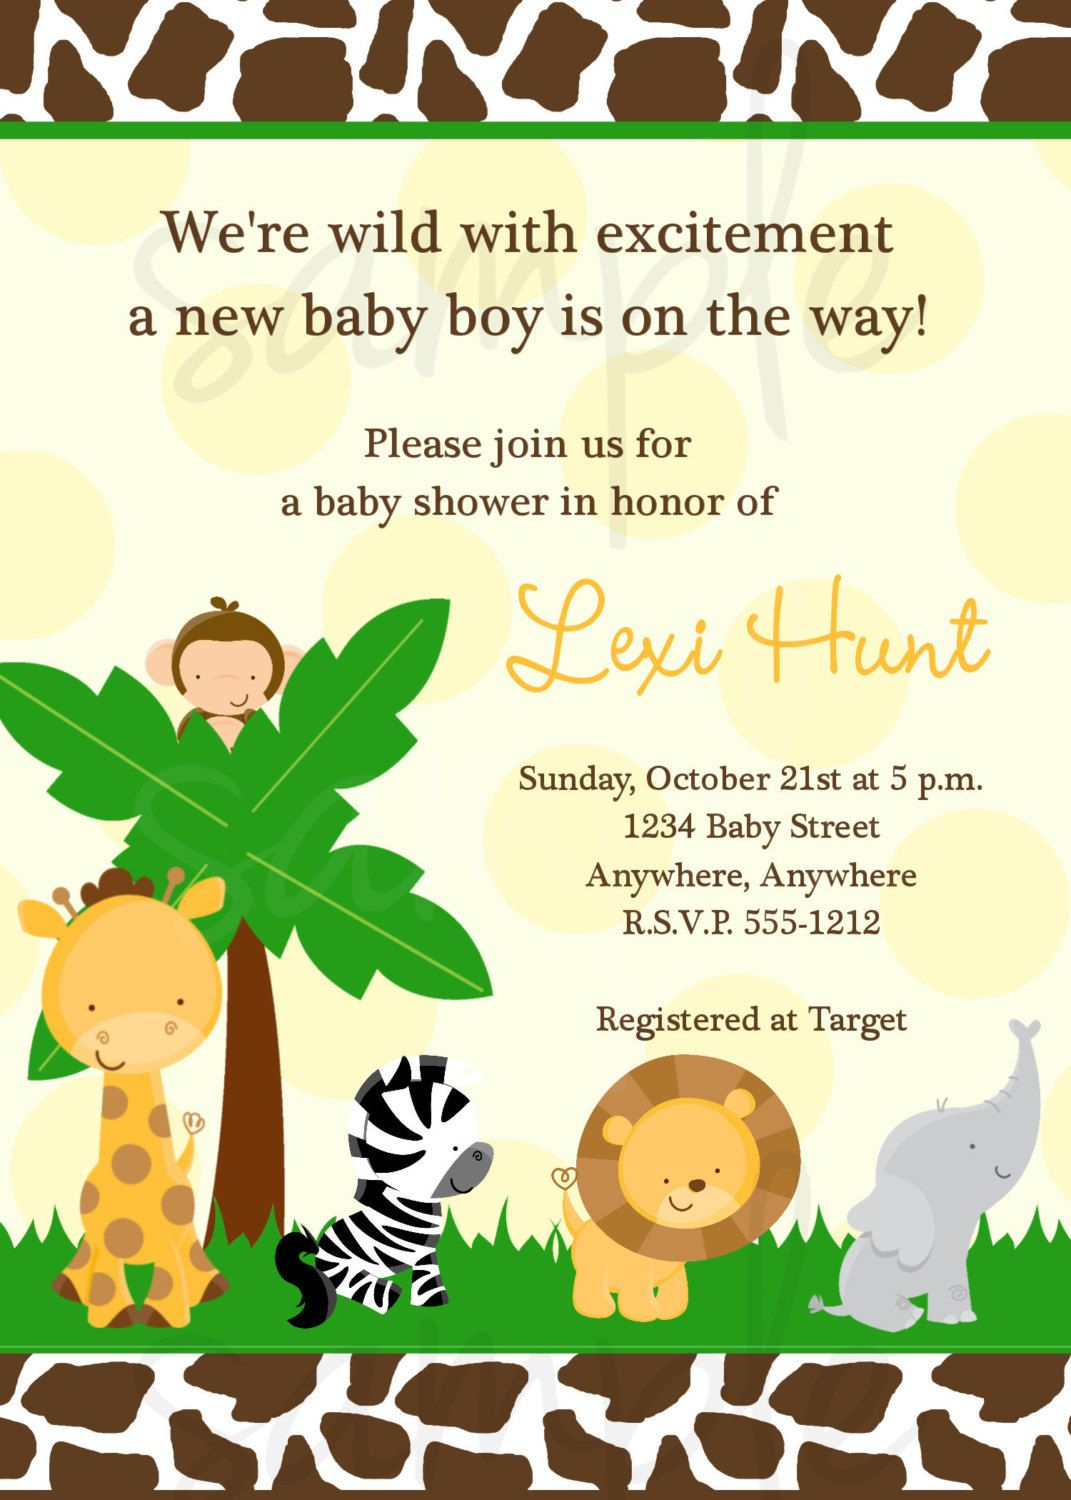 Safari Baby Shower Invitation Jungle Baby Shower Invitation Safari - Free Printable Jungle Safari Baby Shower Invitations